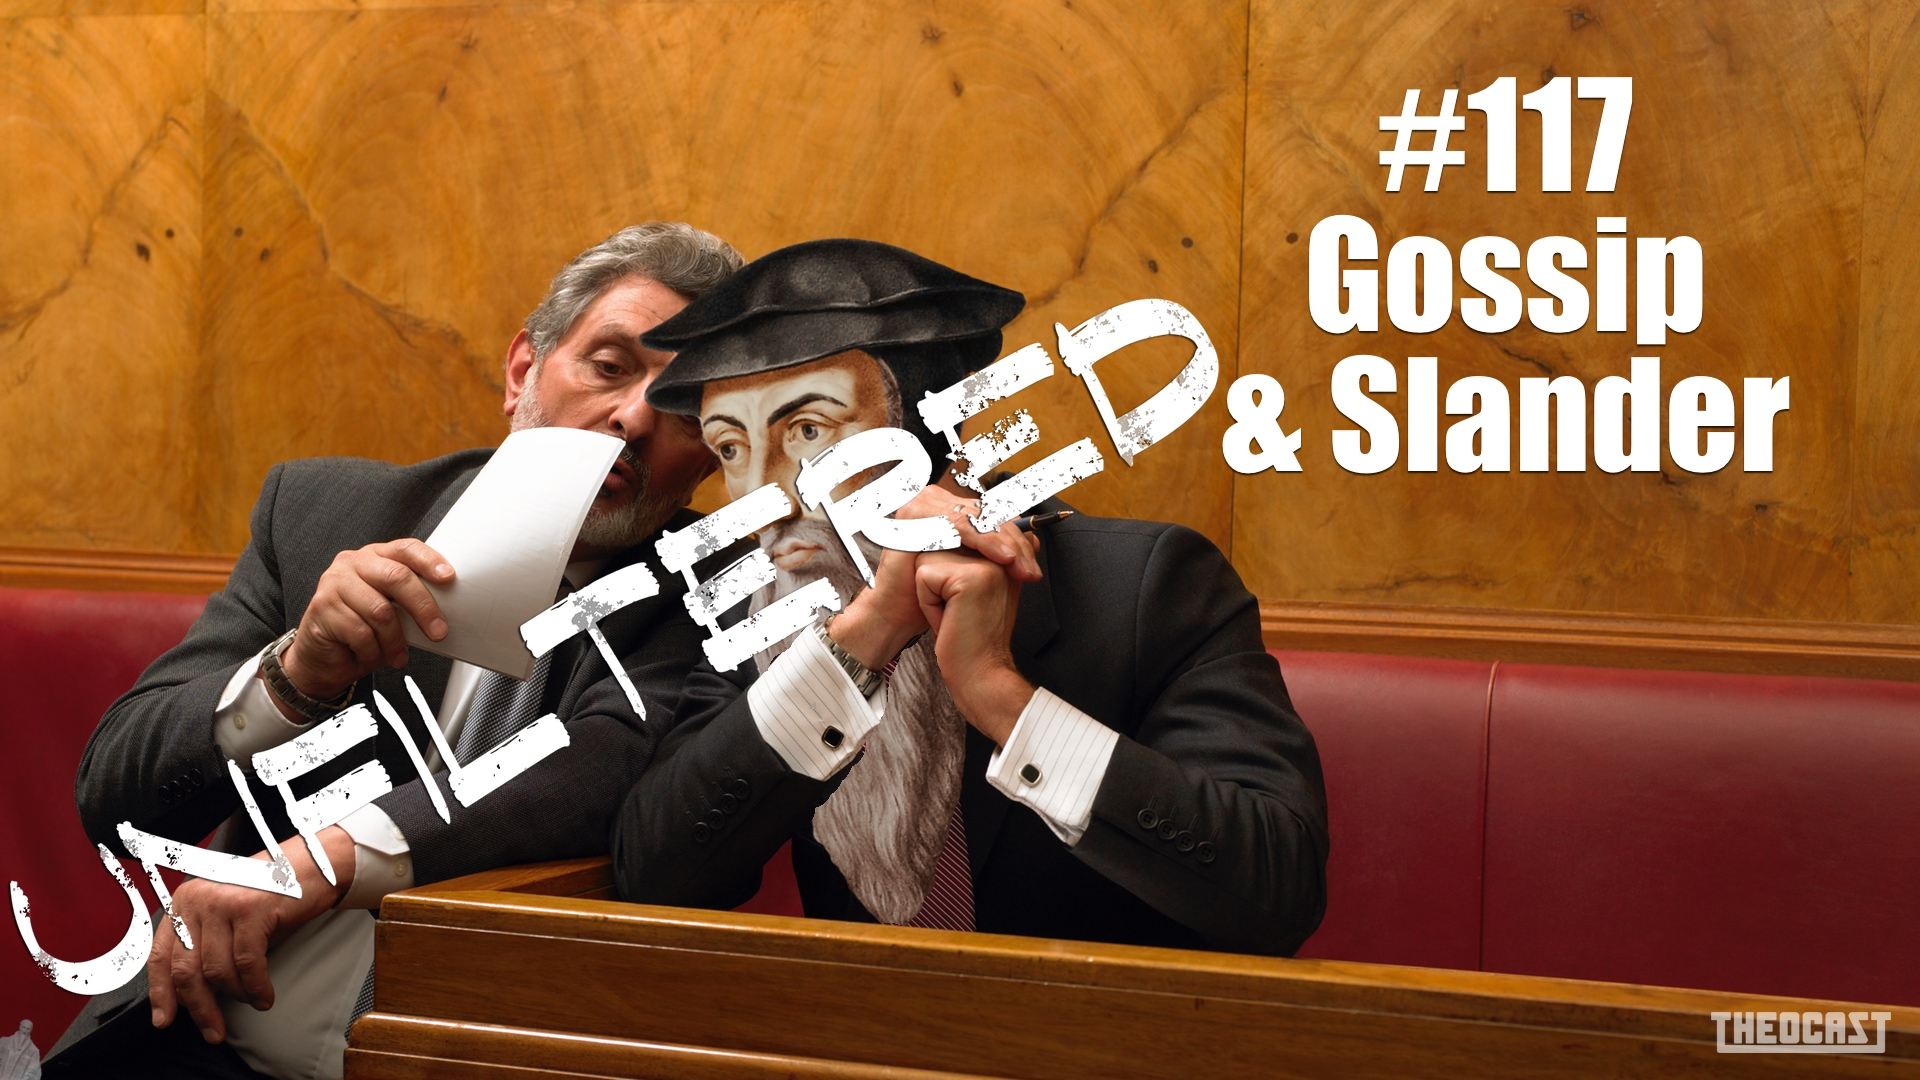 UNFILTERED #117 Gossip & Slander